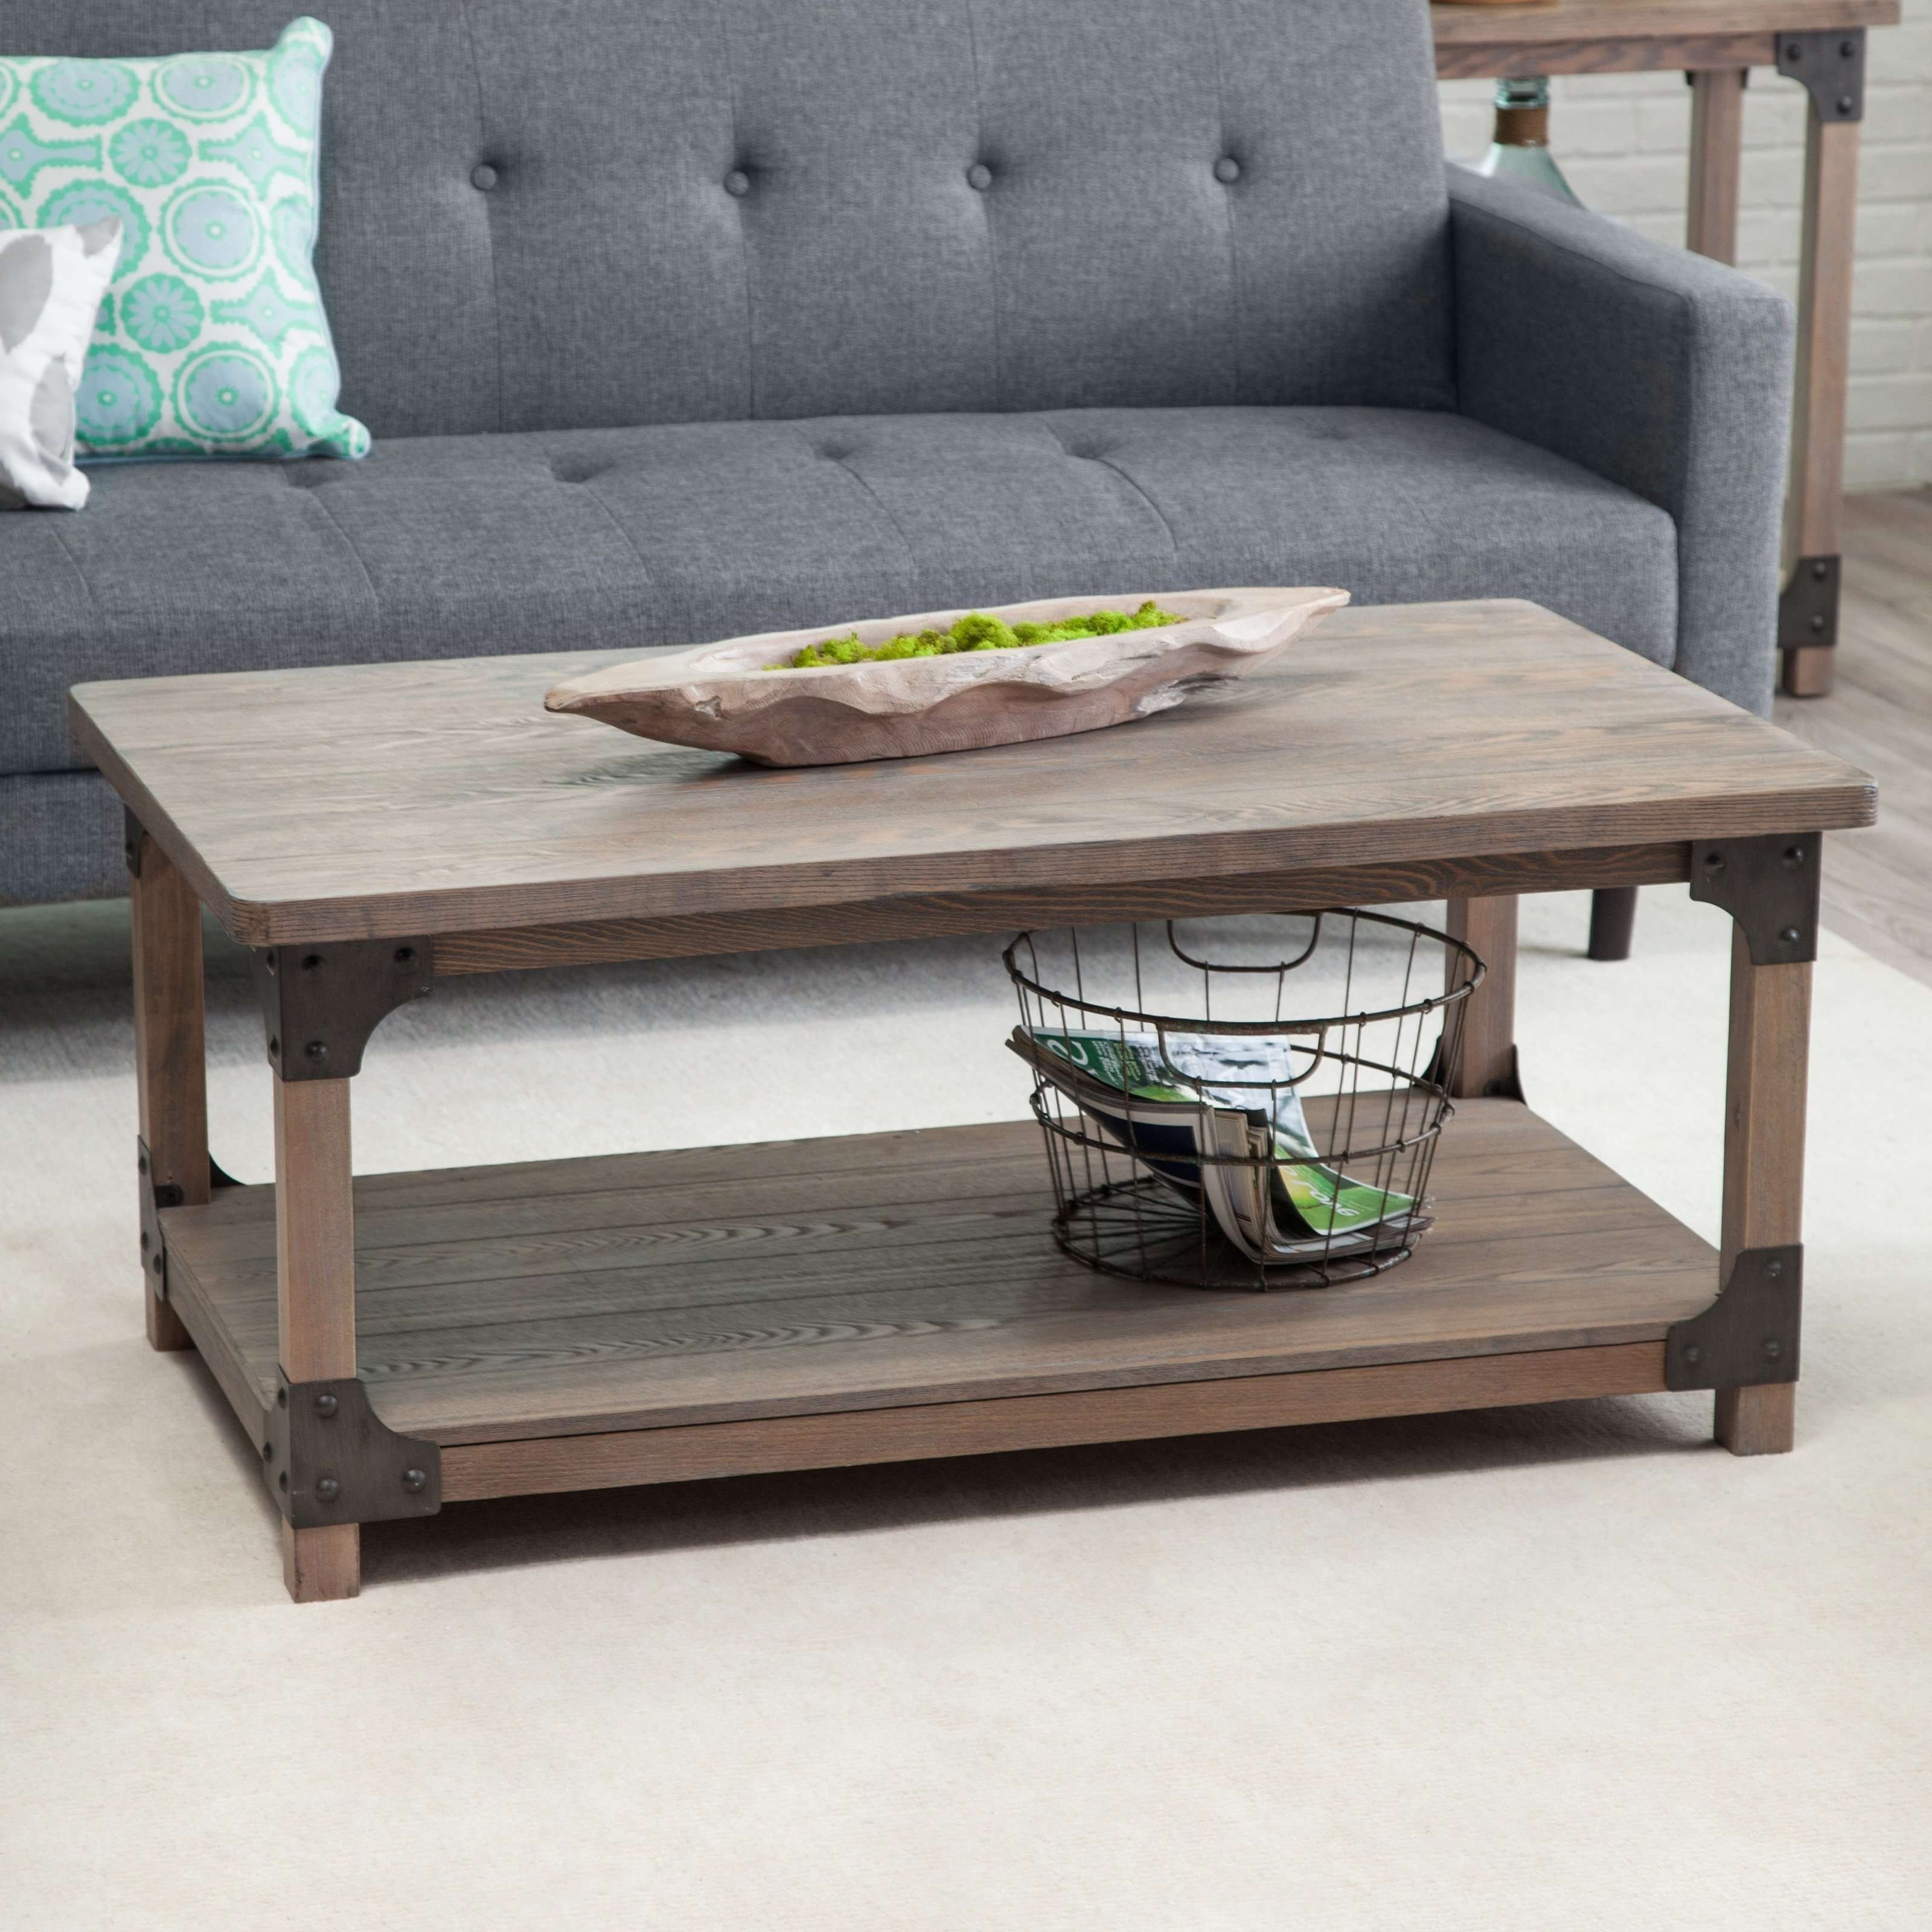 Coffee Table : Fabulous Rustic Coffee Table Southwestern Expansive Throughout Trendy Rustic Coffee Table Drawers (View 4 of 20)